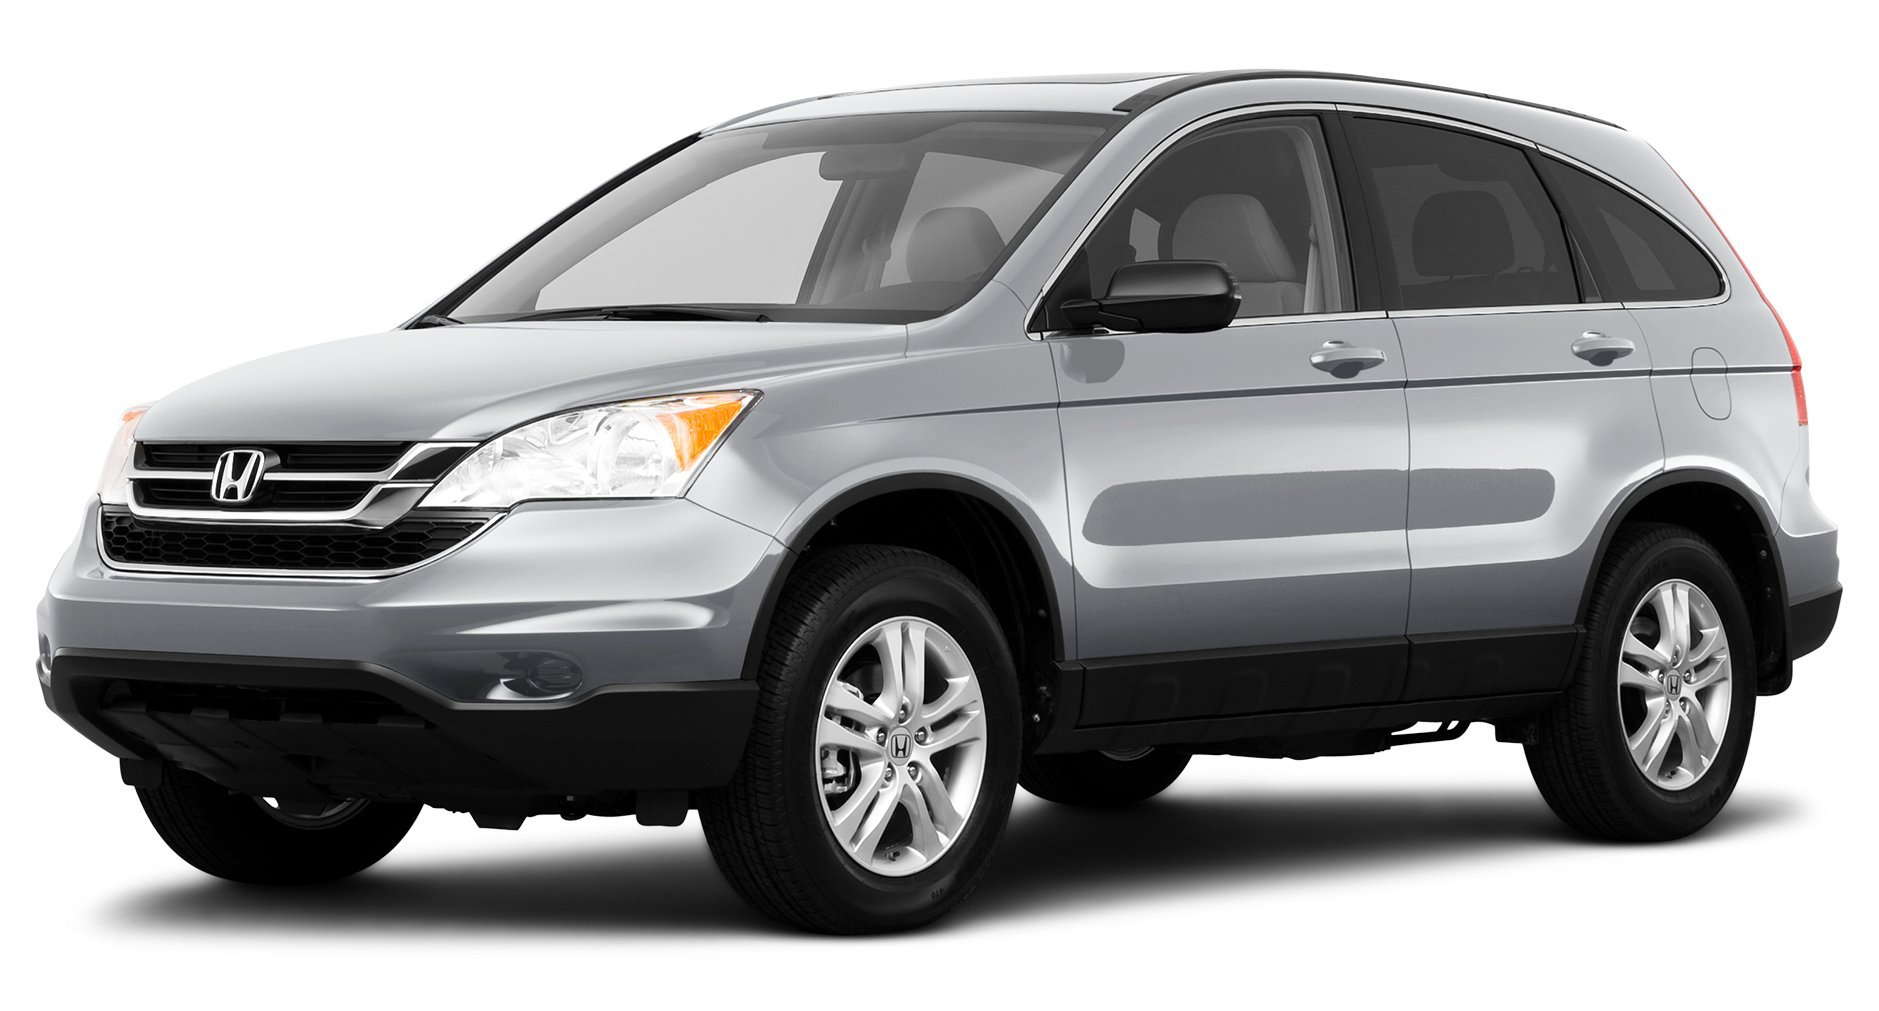 2010 honda cr v reviews images and specs vehicles. Black Bedroom Furniture Sets. Home Design Ideas